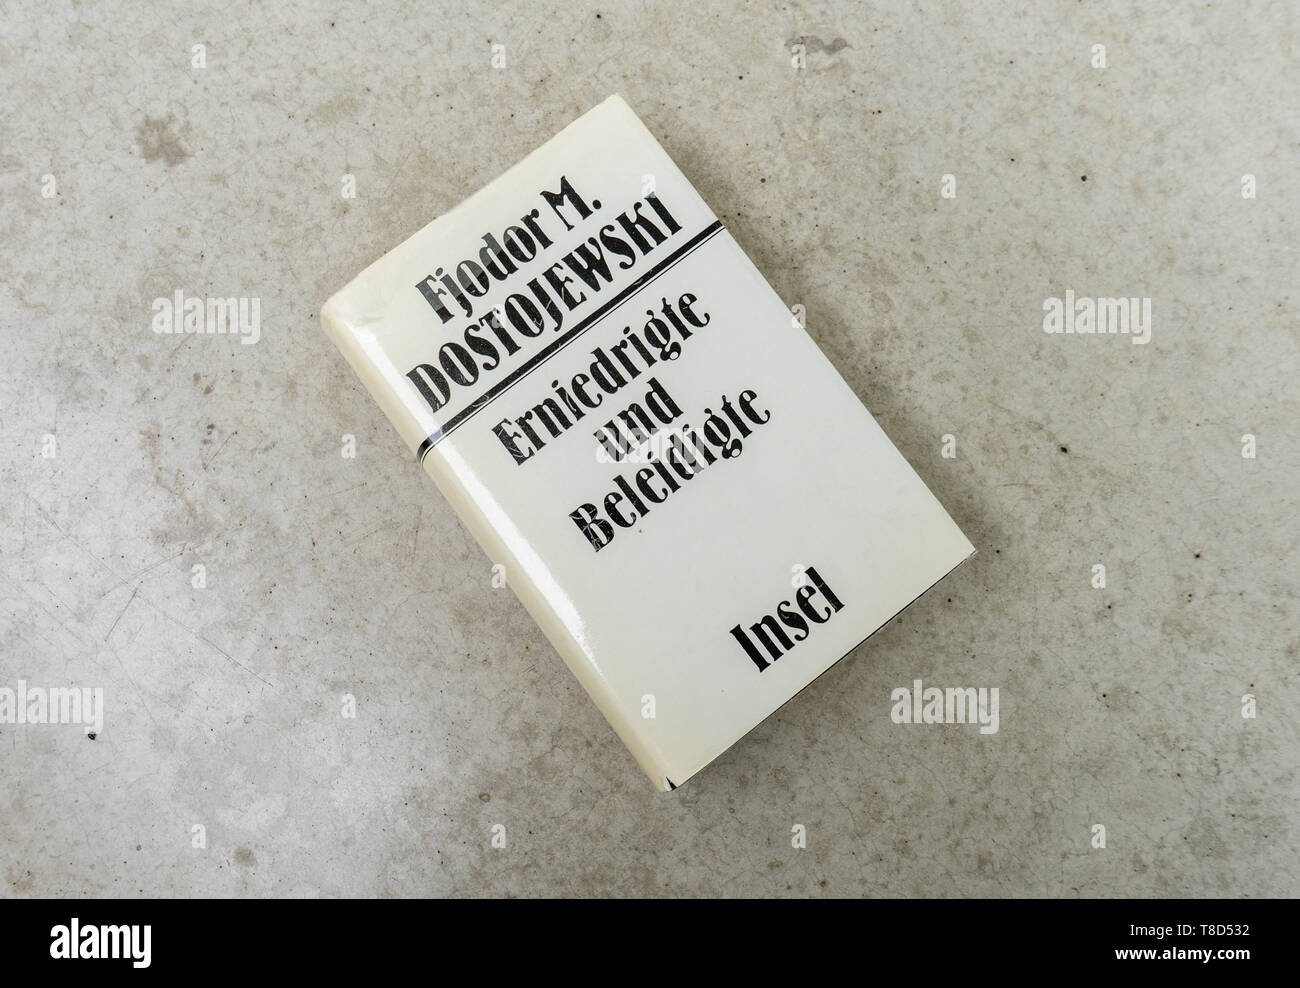 A copy of the classic novel 'Erniedrigte und Beleidigte' by Russian author Fjodor Dostojewski (Humiliated and Insulted by Fyodor Dostoyevsky) - Stock Image